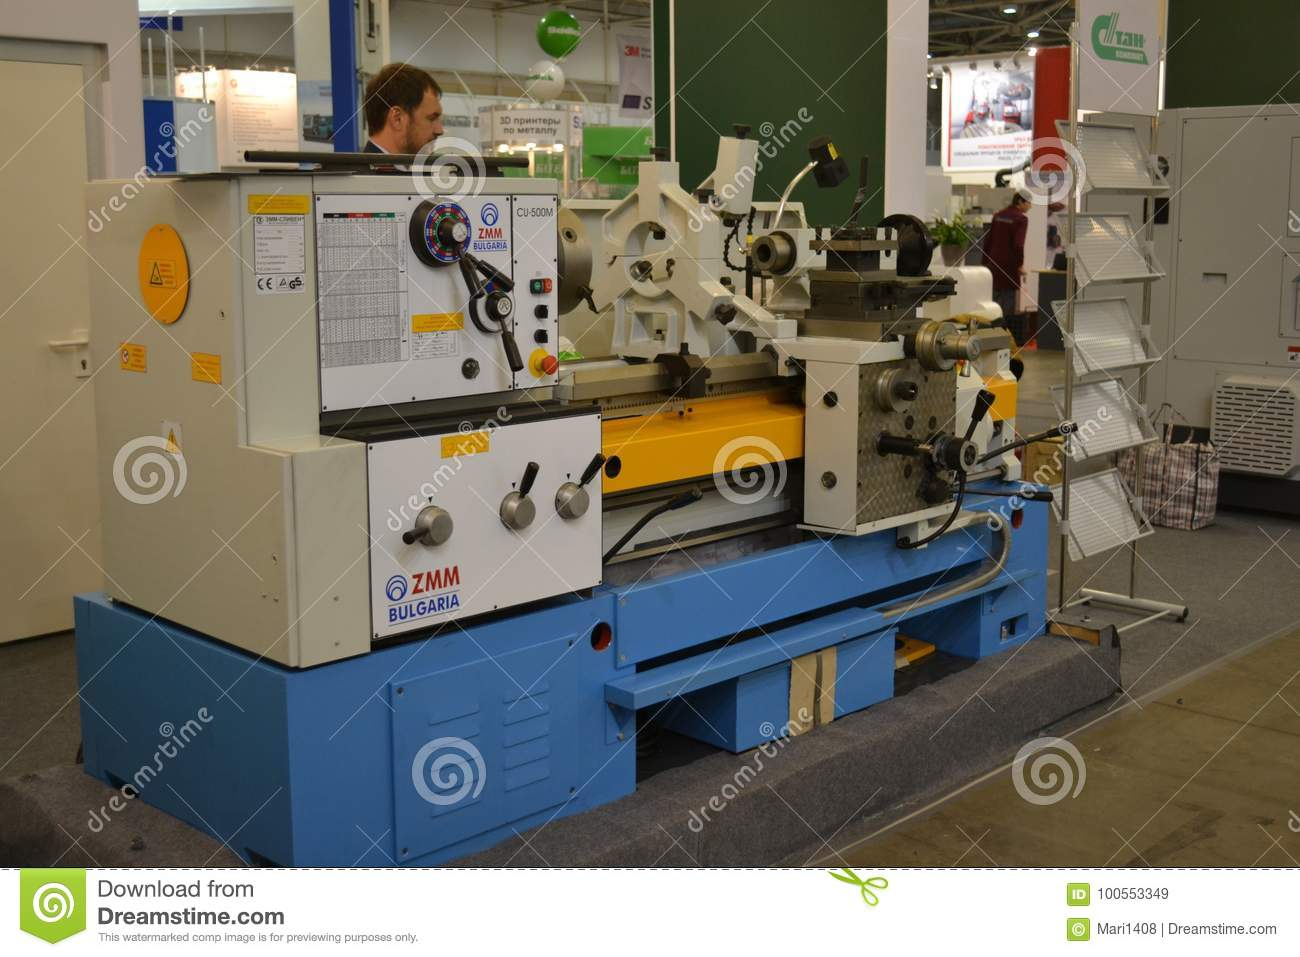 Industrial Machinery, Industrial Equipment, Industrial Facilities And  Machine Tools, Machinery Lathes Editorial Stock Image - Image of factory,  facility: 100553349